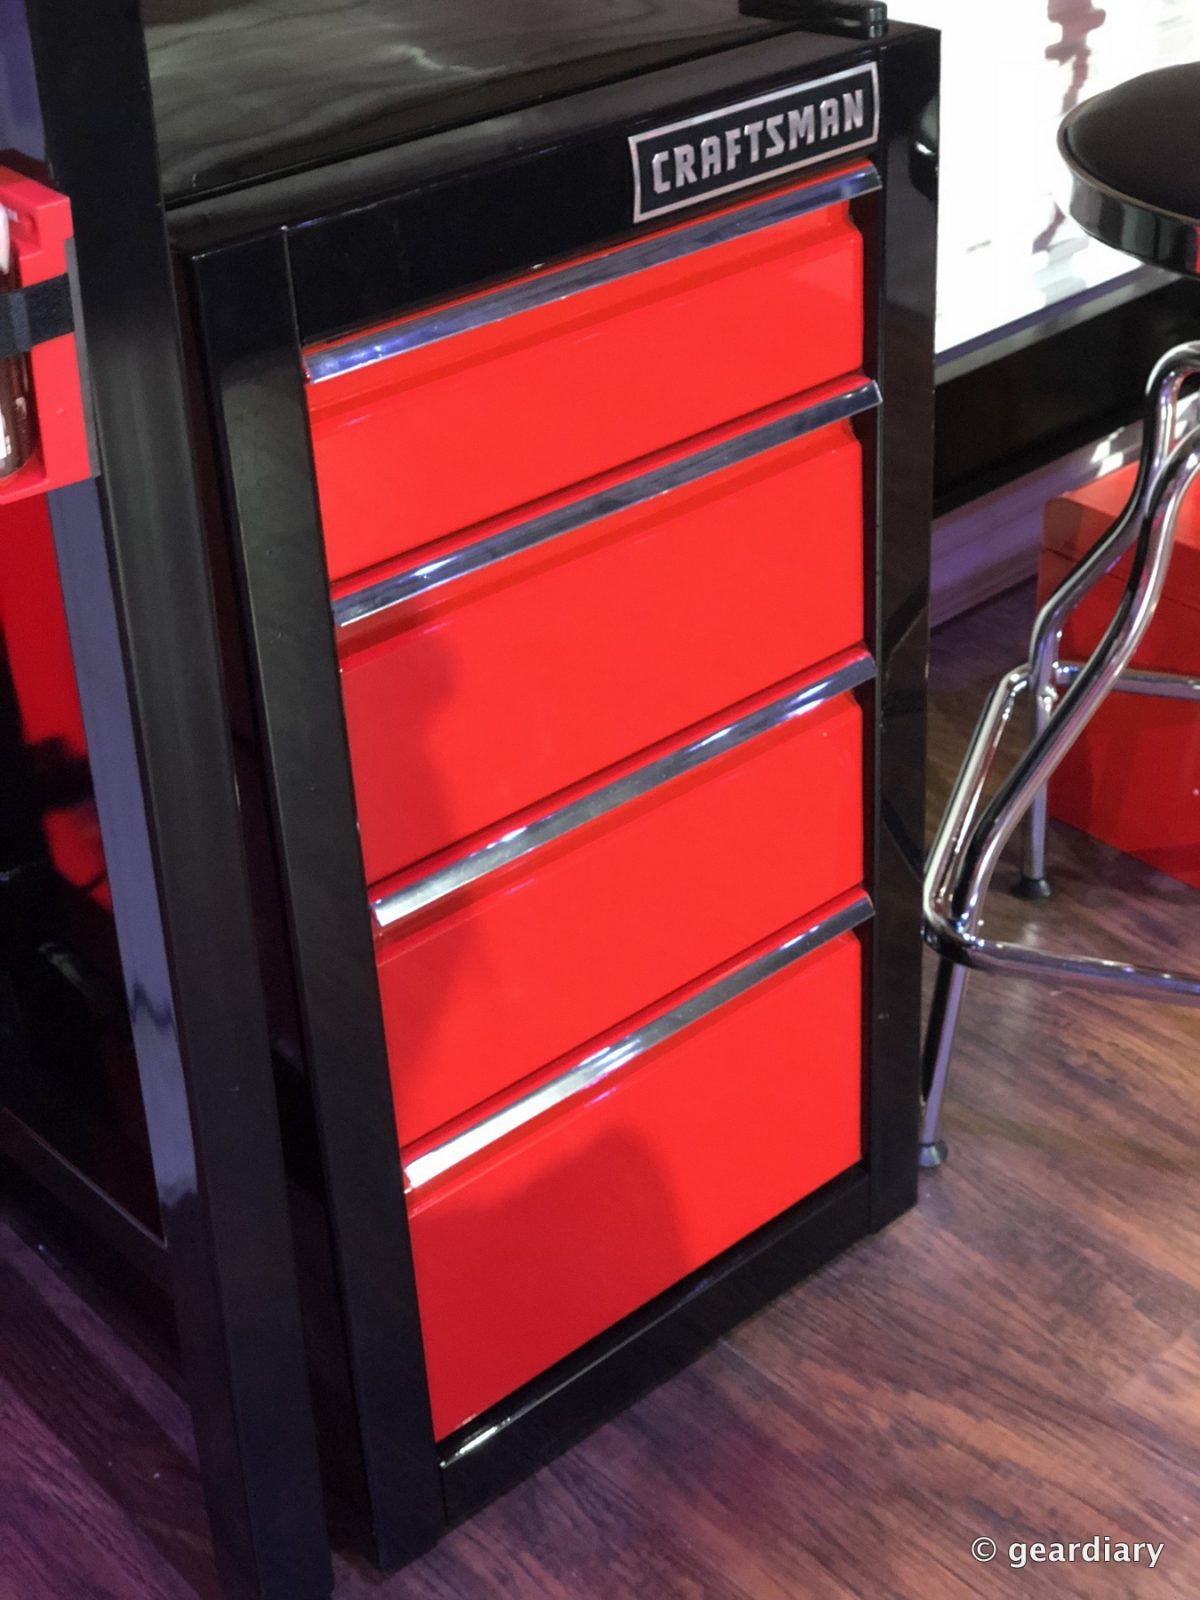 Craftsman Brand Relaunch Revitalizes an Old Favorite and